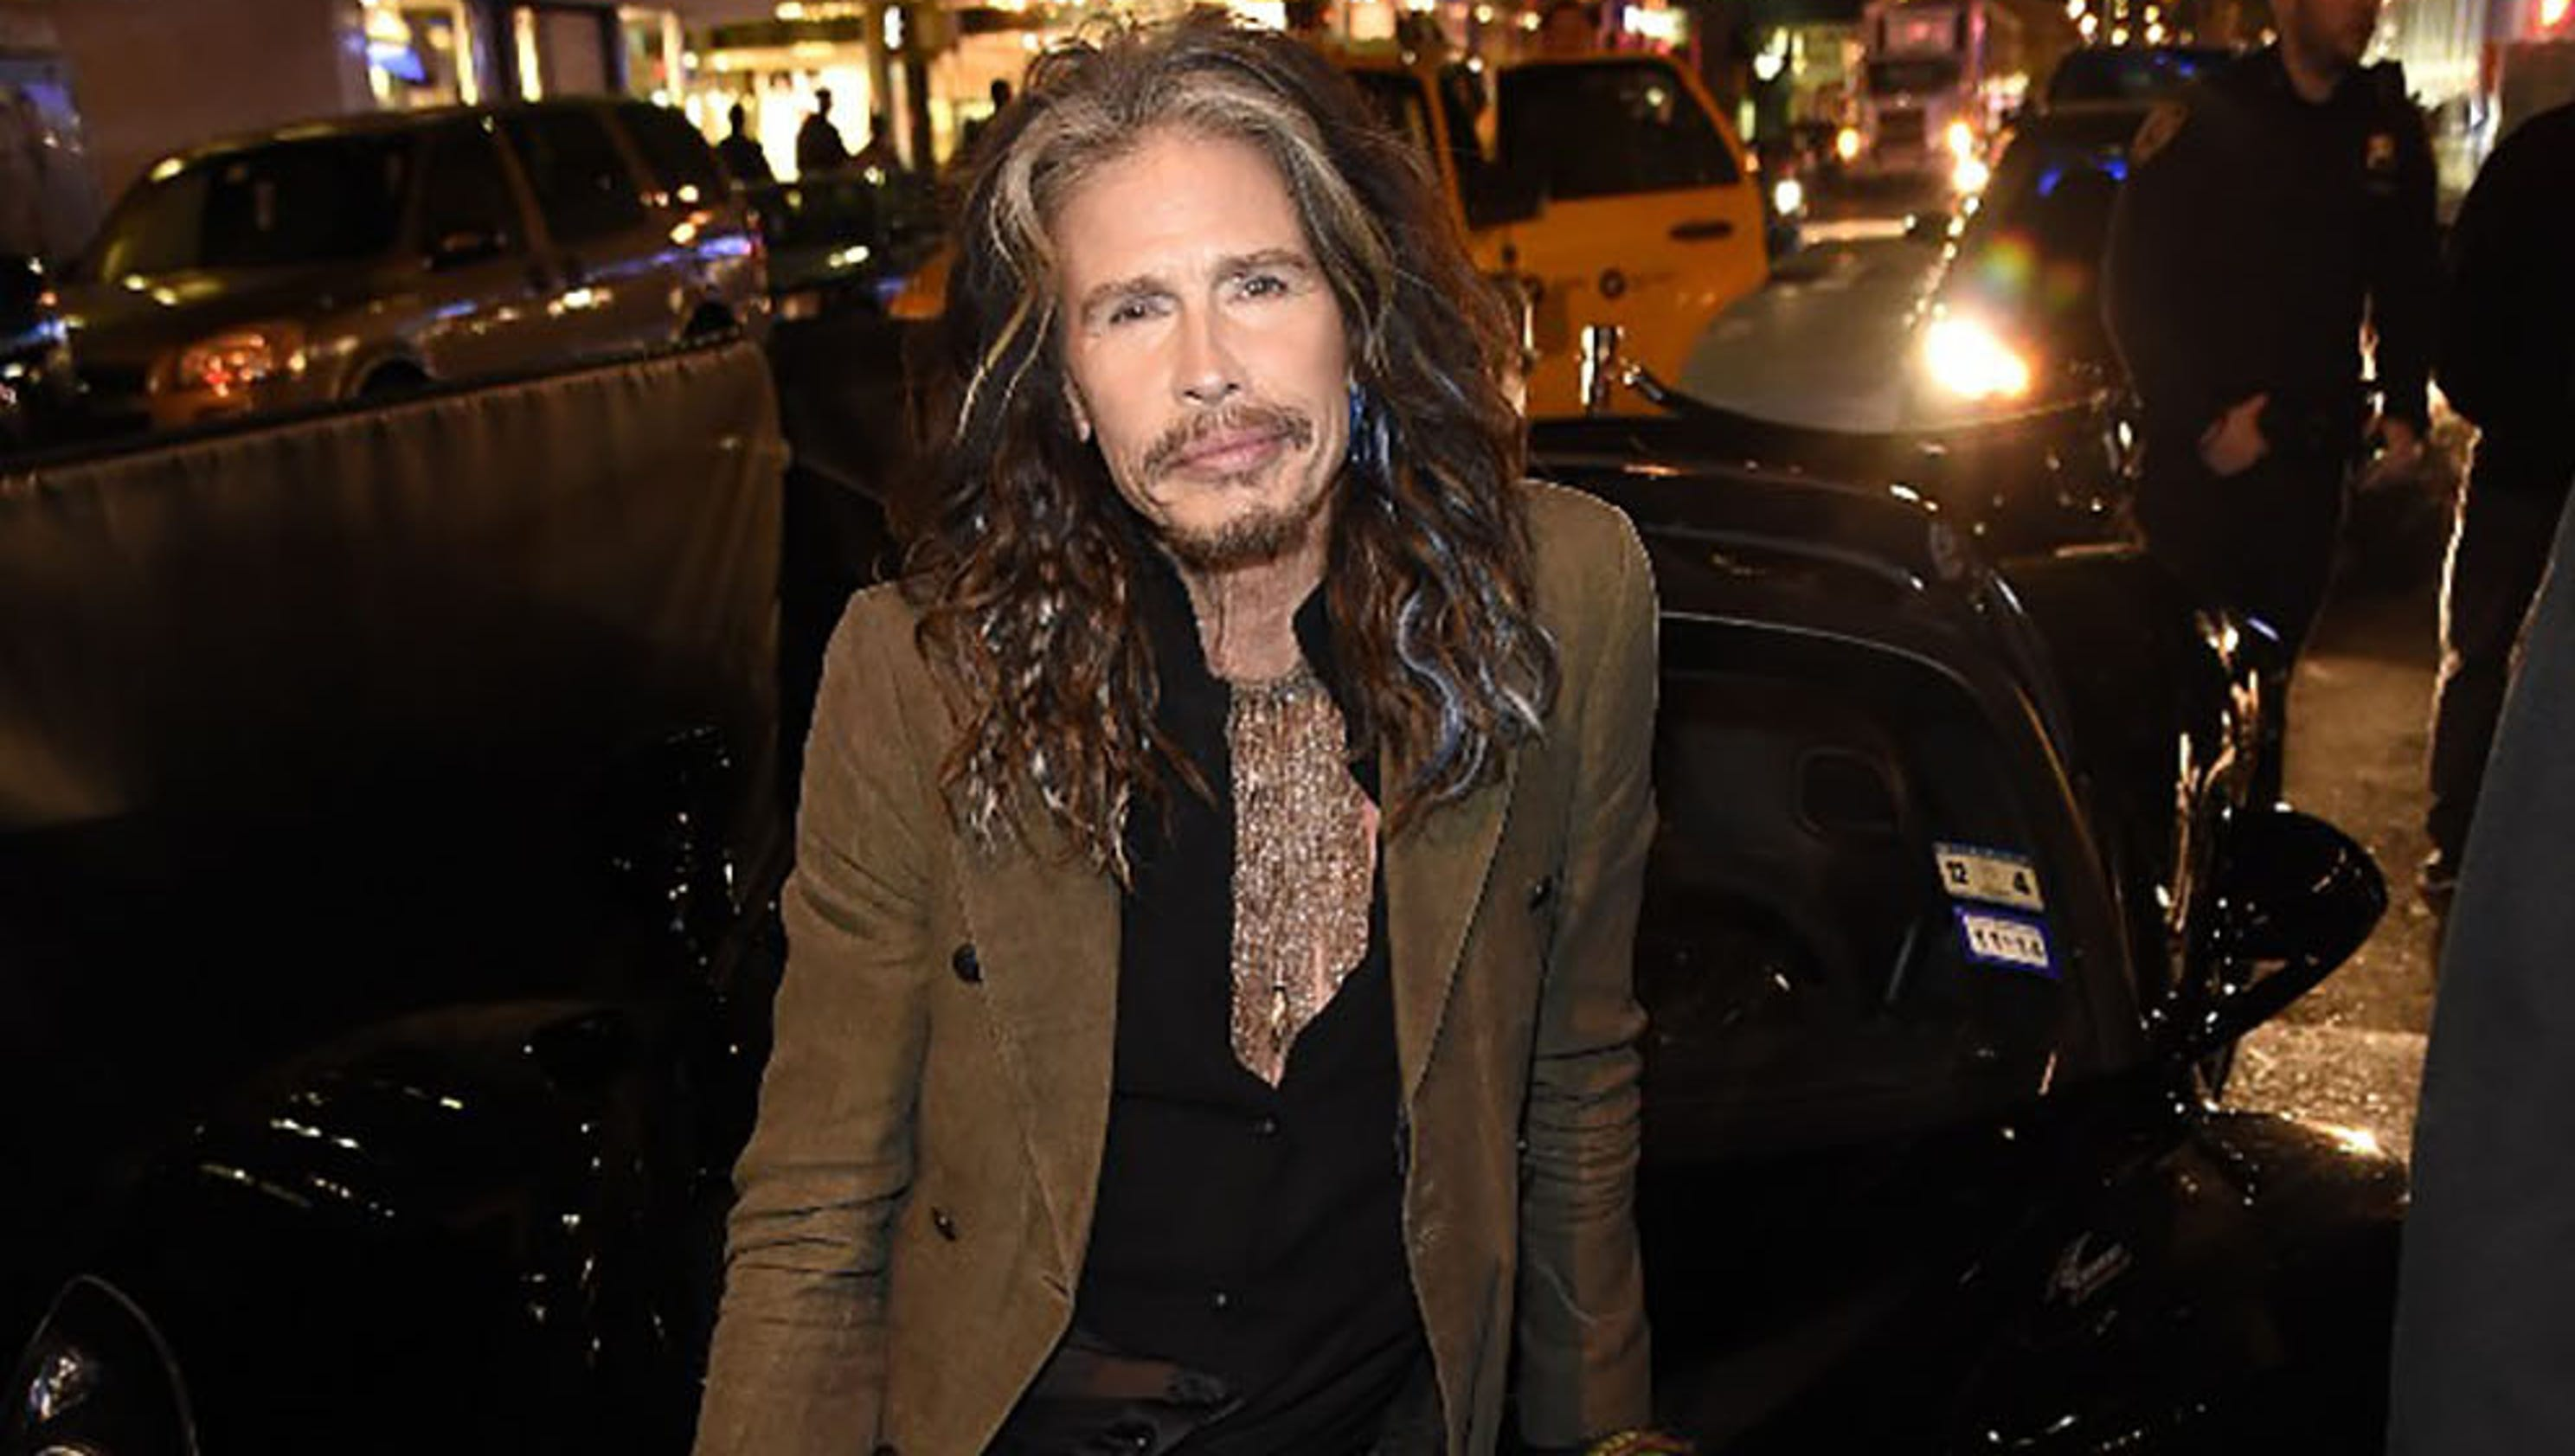 Steven tyler plays a homecoming show down the street from betty ford nvjuhfo Images